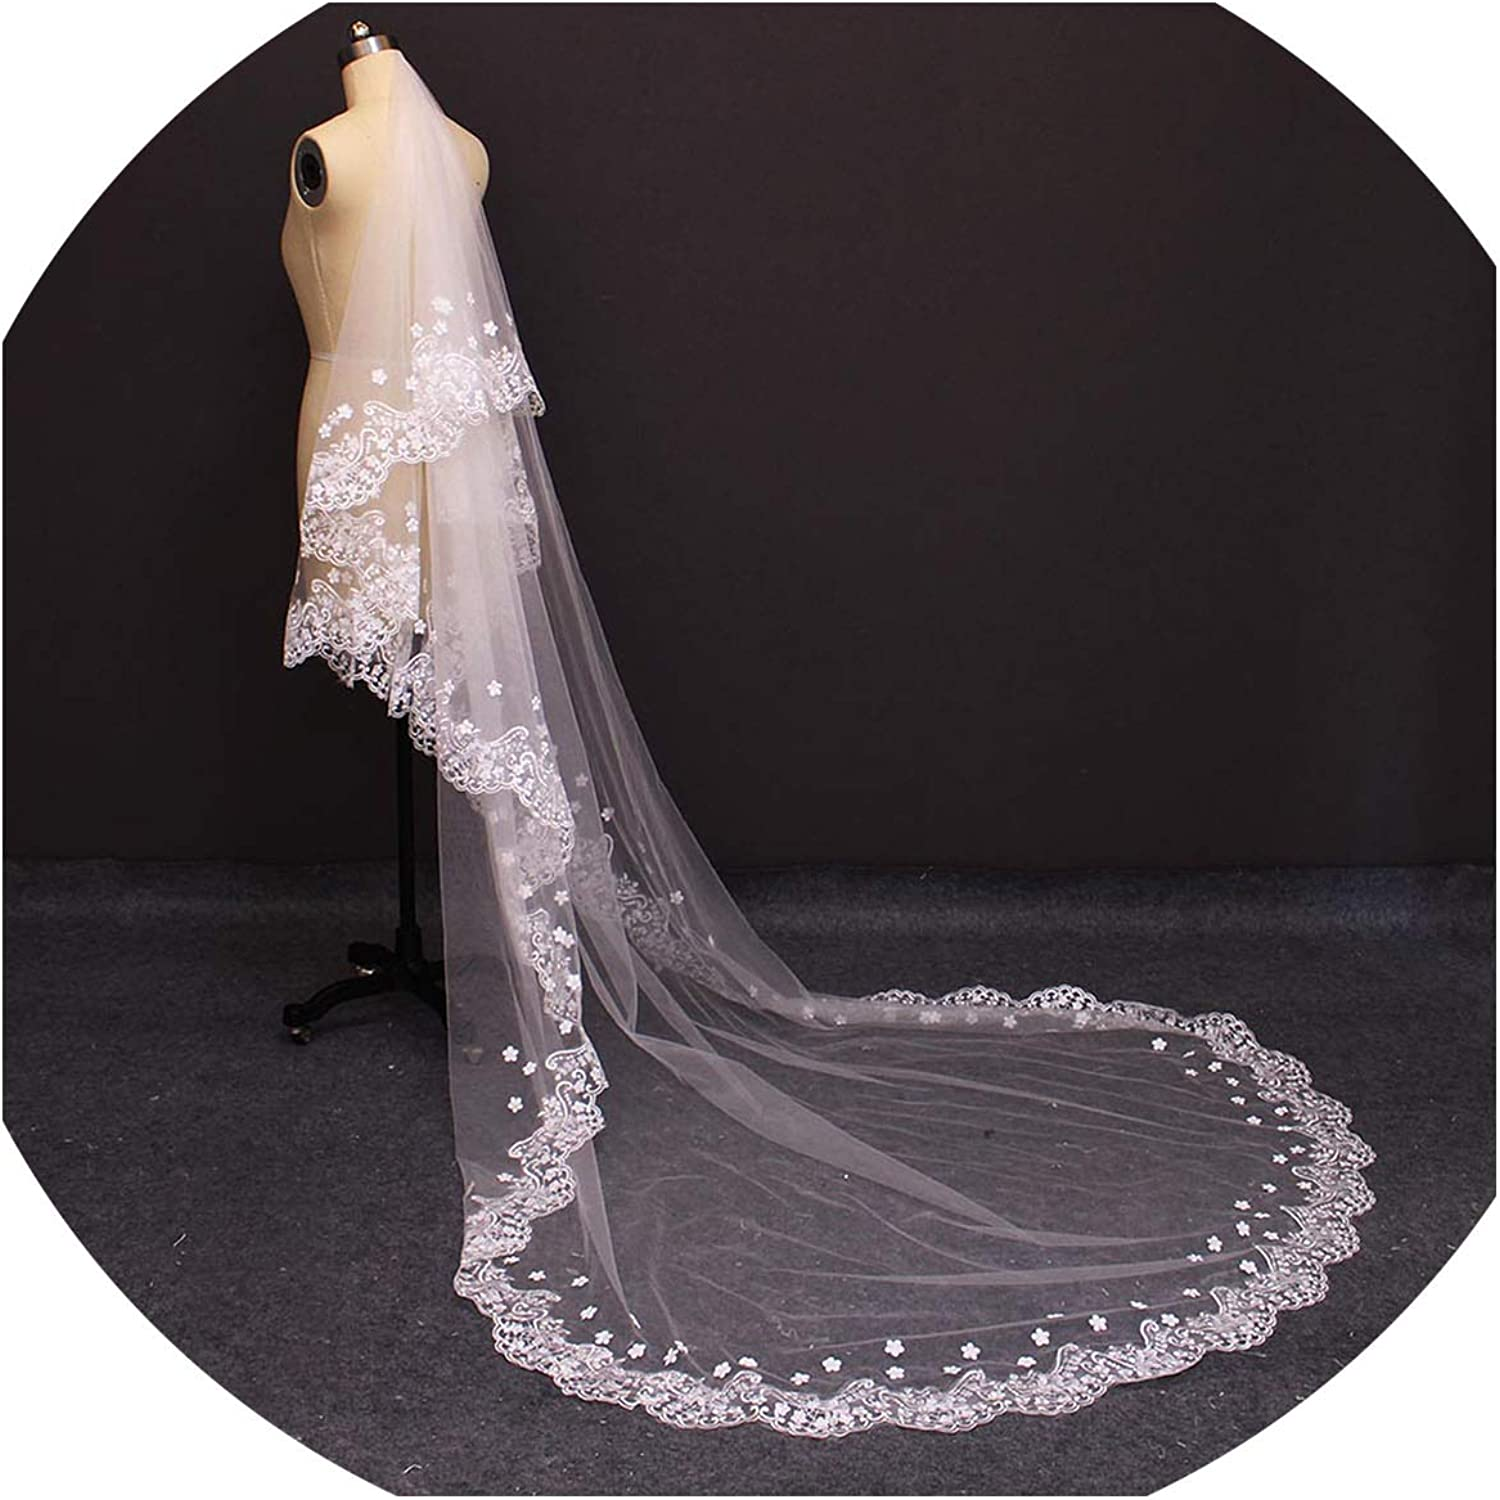 2019 Real Photos Two Layers Lace Edge Pearl Beaded Flower Wedding Veil With Comb 2 T Bridal Veils,Ivory